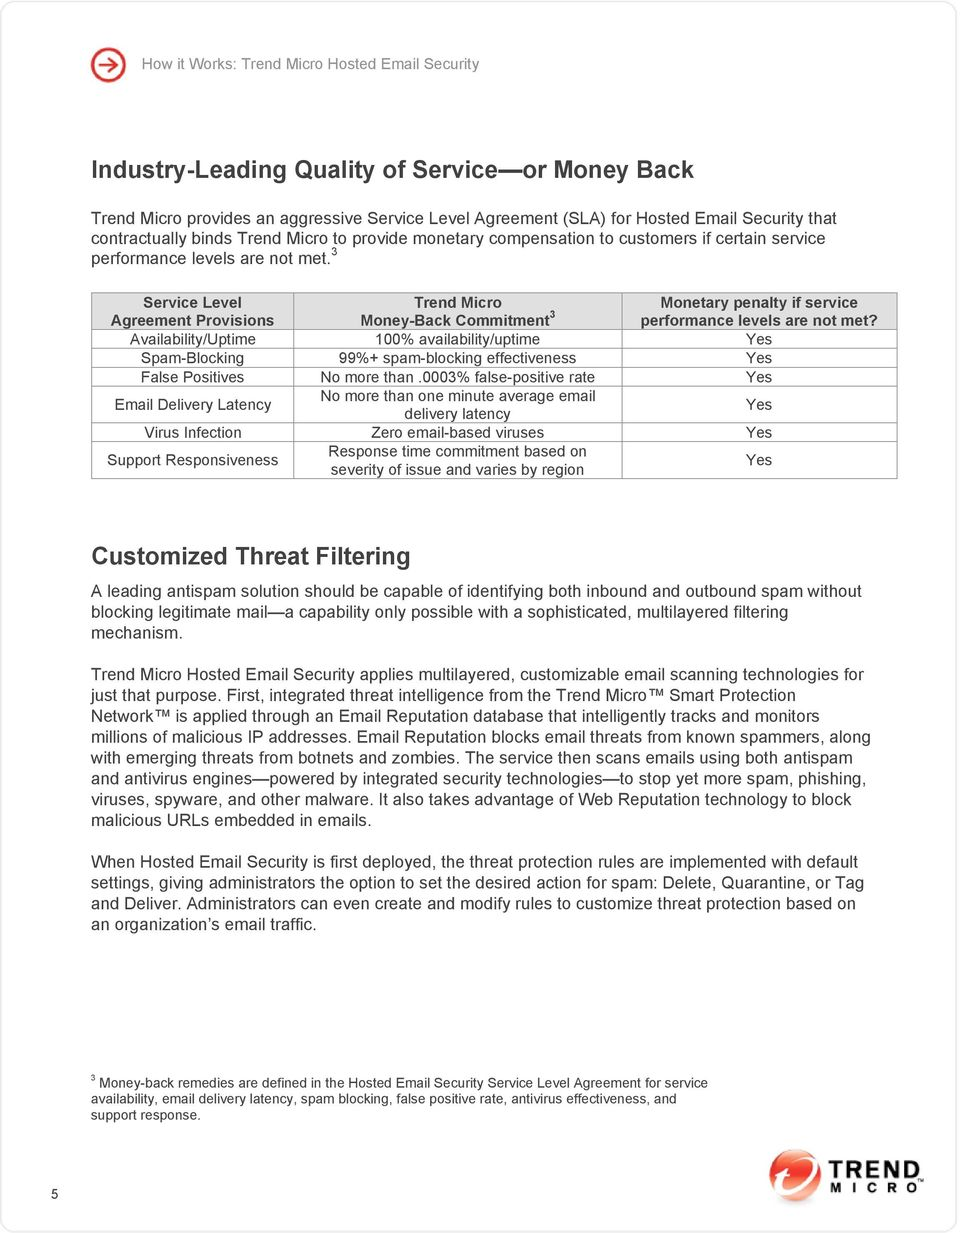 3 Service Level Agreement Provisions Trend Micro Money-Back Commitment 3 Monetary penalty if service performance levels are not met?